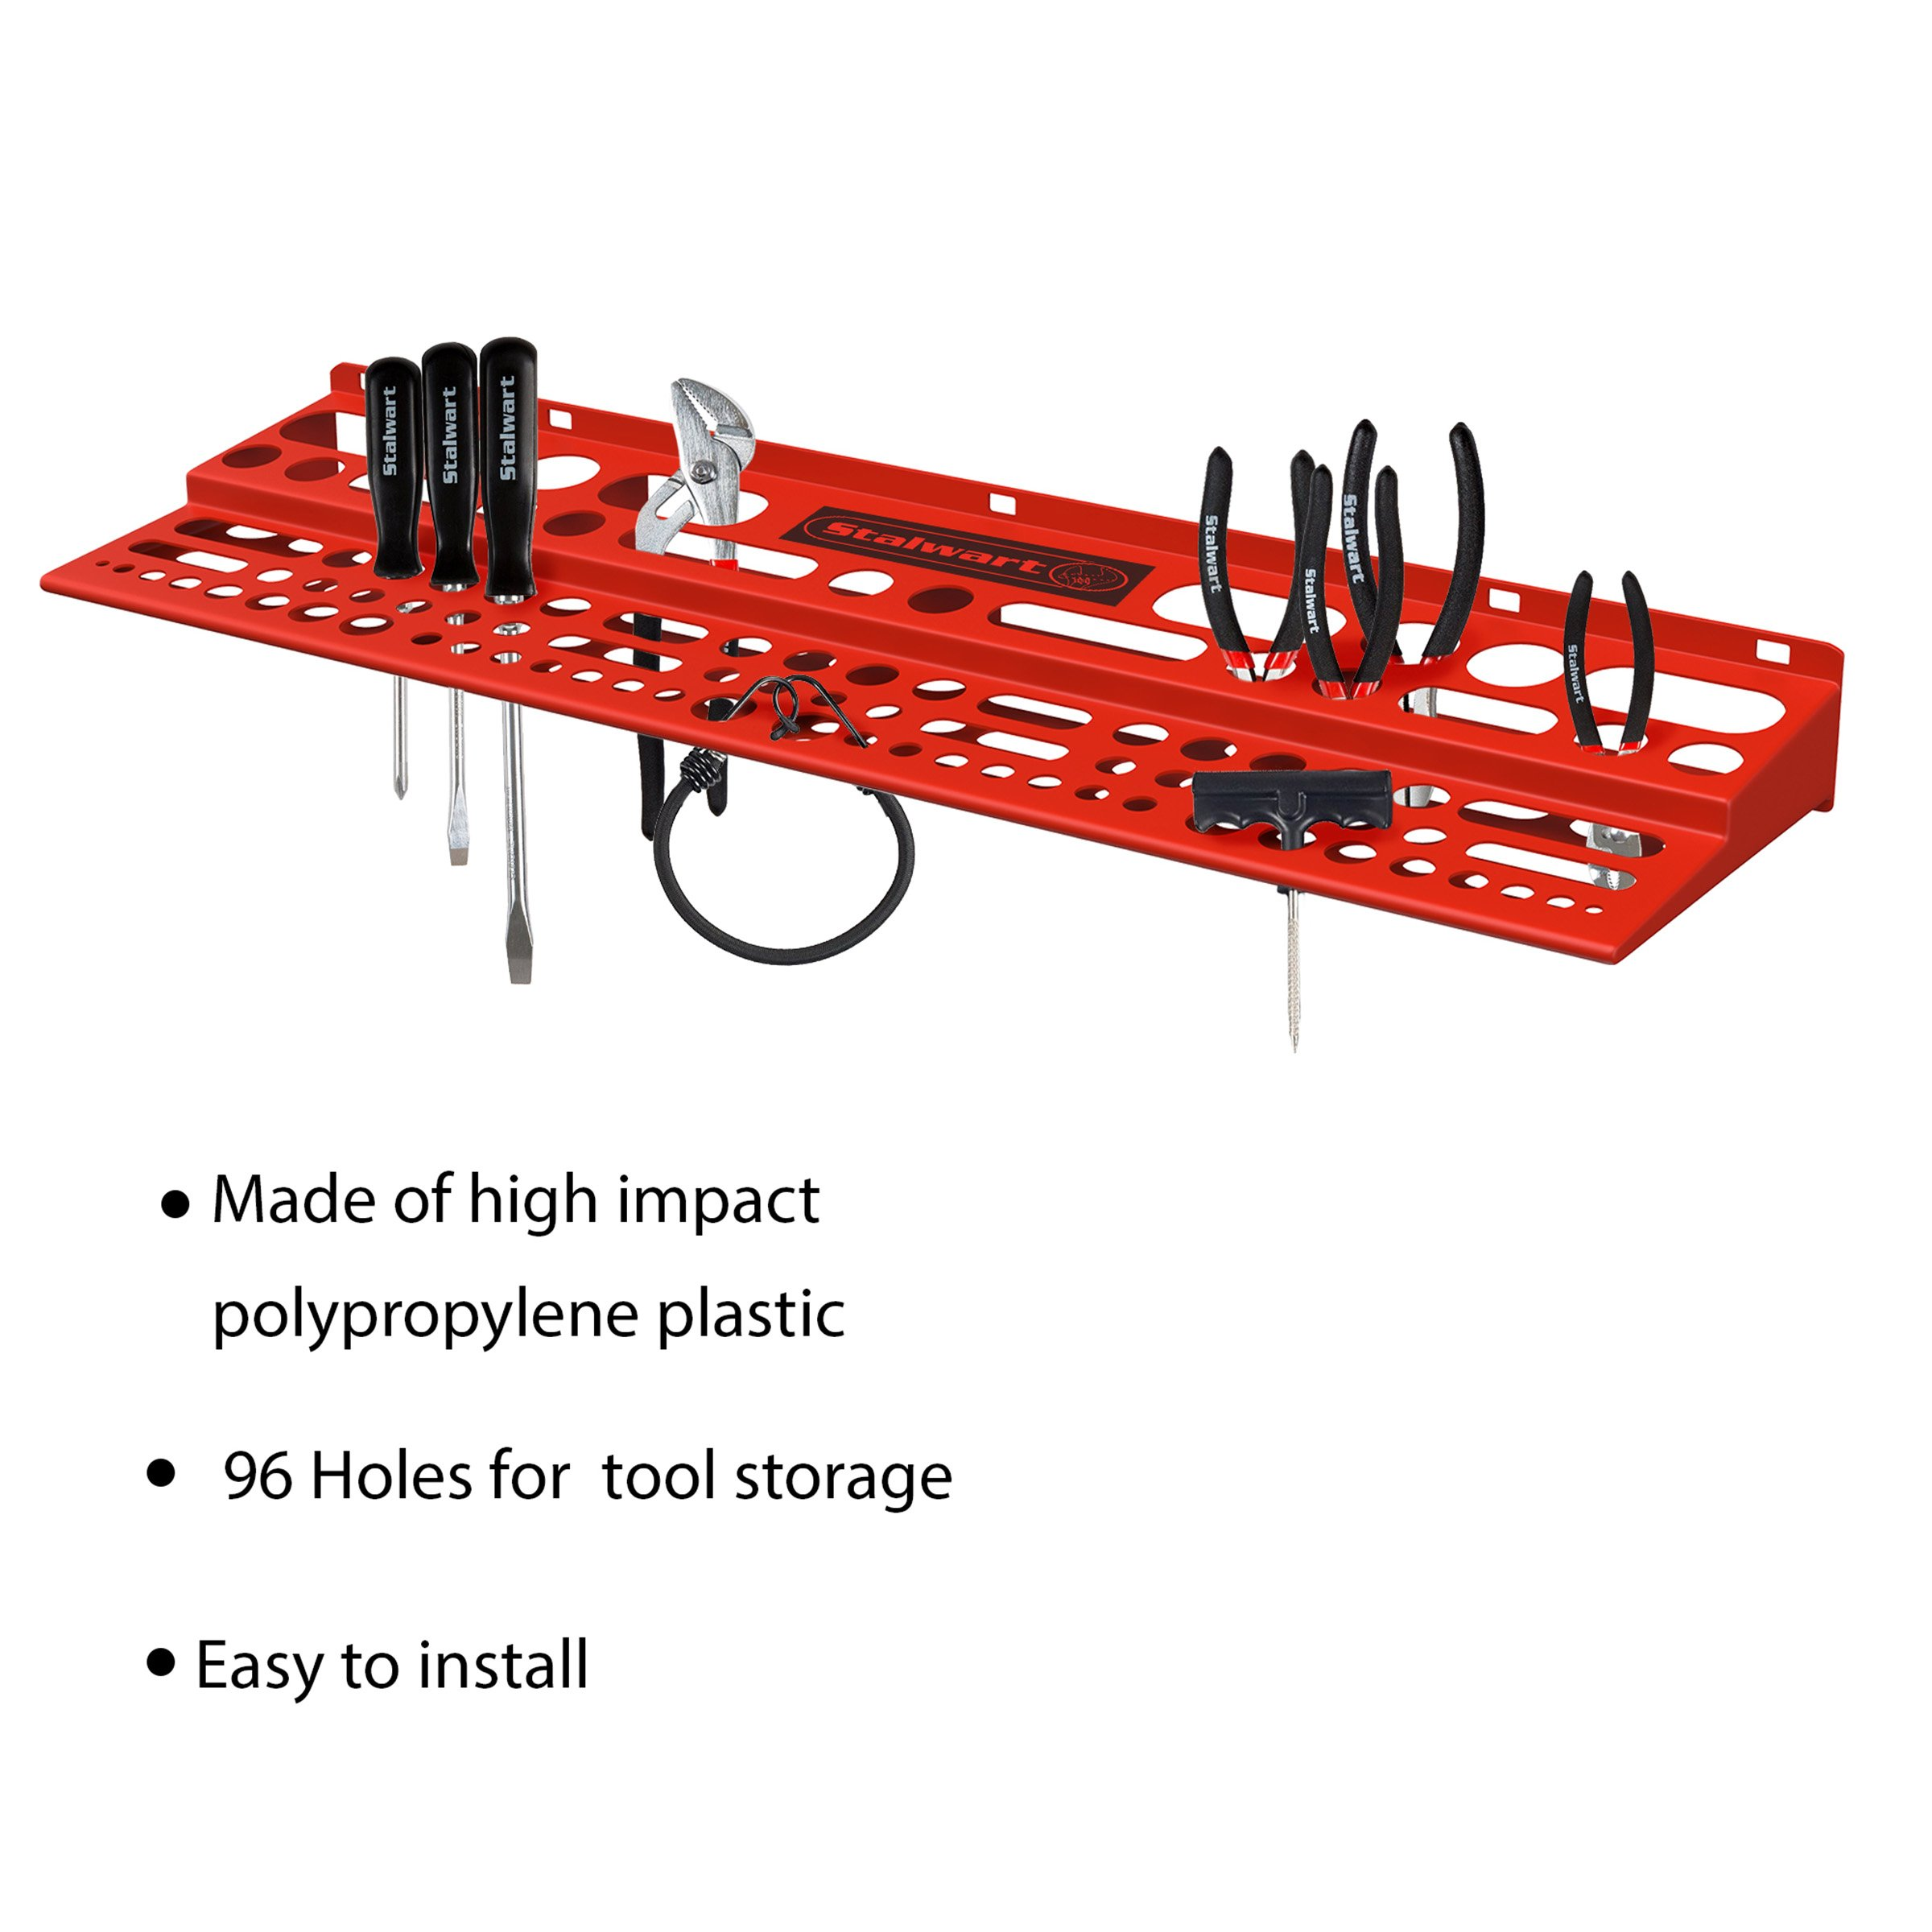 Mountable Tool Storage Shelf for Garage, Shed or Work Shop Organization- Wall Mount Multi Level Organizer Rack, Holds Up To 96 Tools by Stalwart by Stalwart (Image #3)